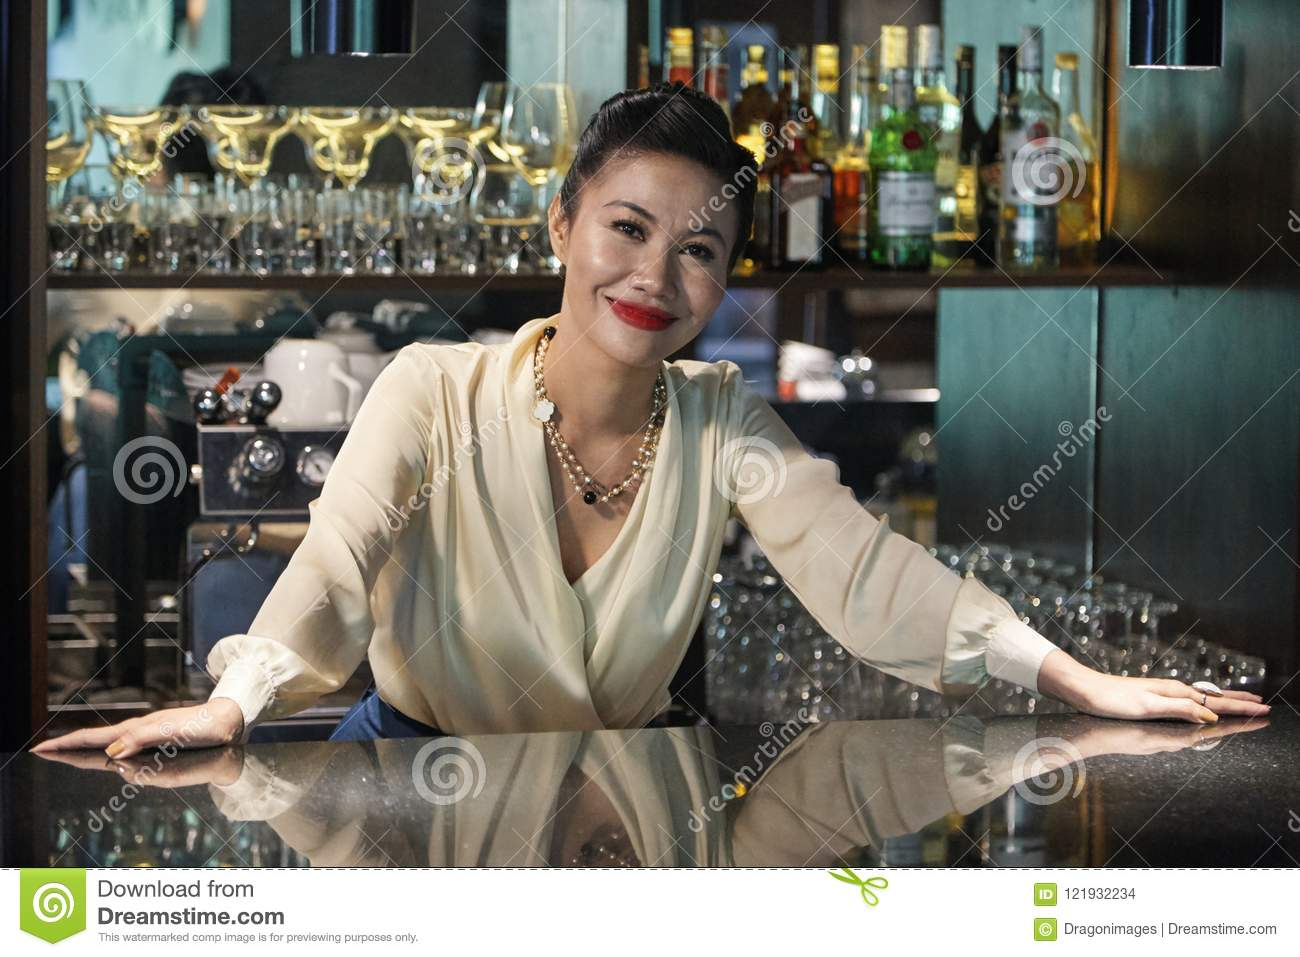 Beautiful female bartender standing relaxed at counter